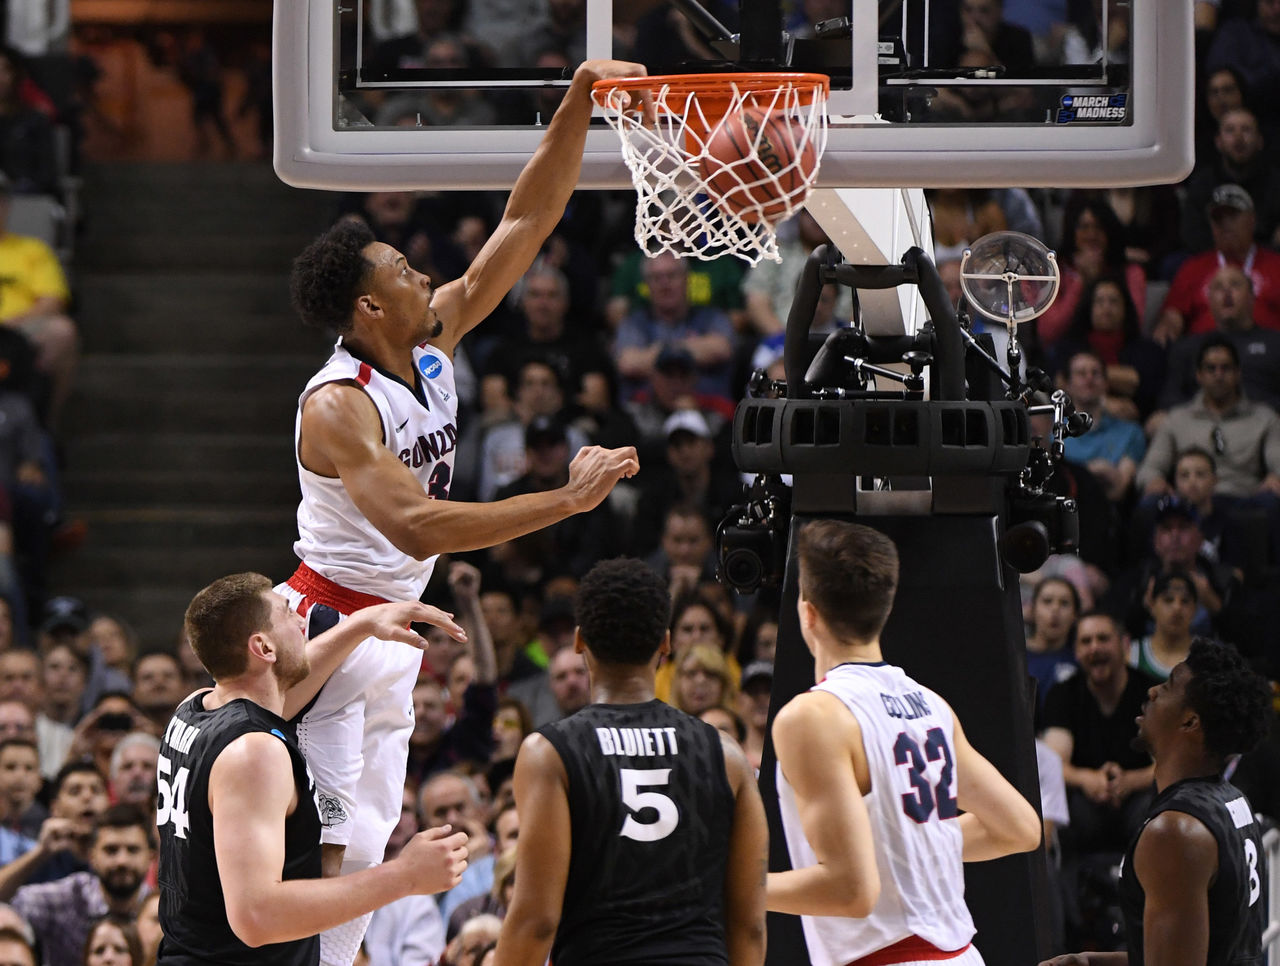 Cropped 2017 03 25t224607z 2122559710 nocid rtrmadp 3 ncaa basketball ncaa tournament west regional gonzaga vs xavier